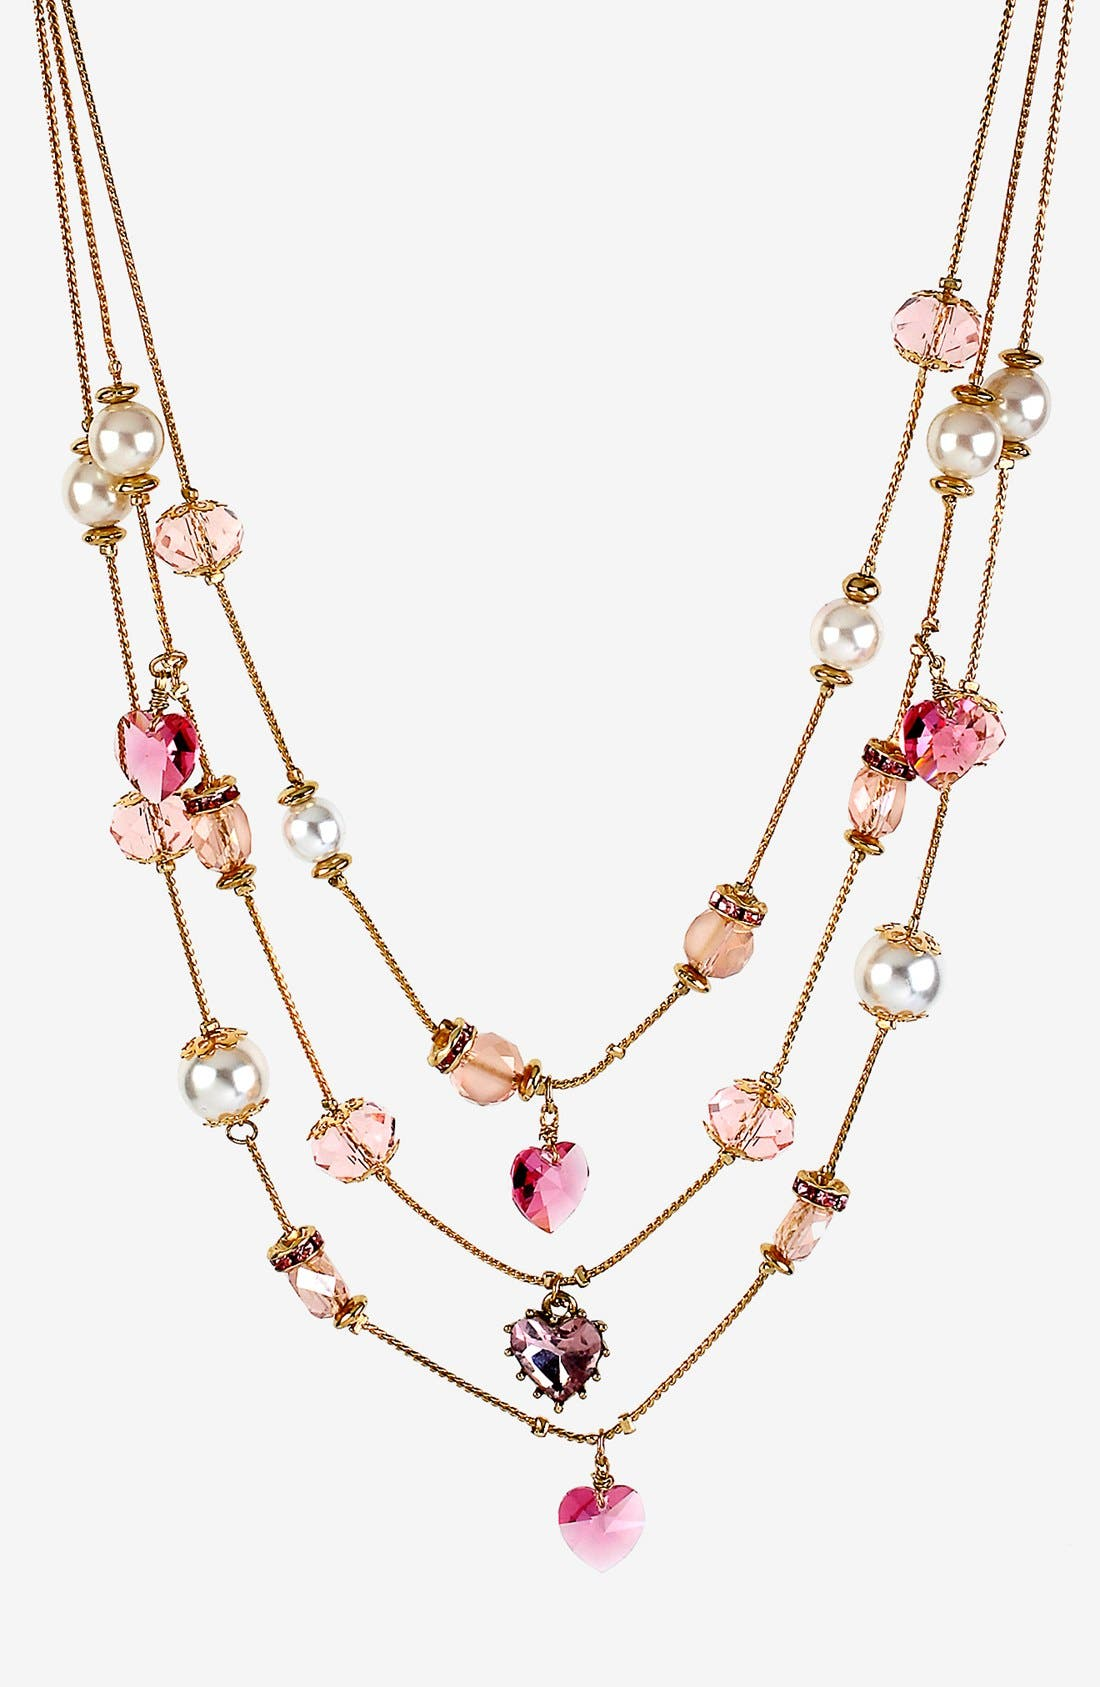 Main Image - Betsey Johnson 'Iconic Pinkalicious' Multistrand Necklace